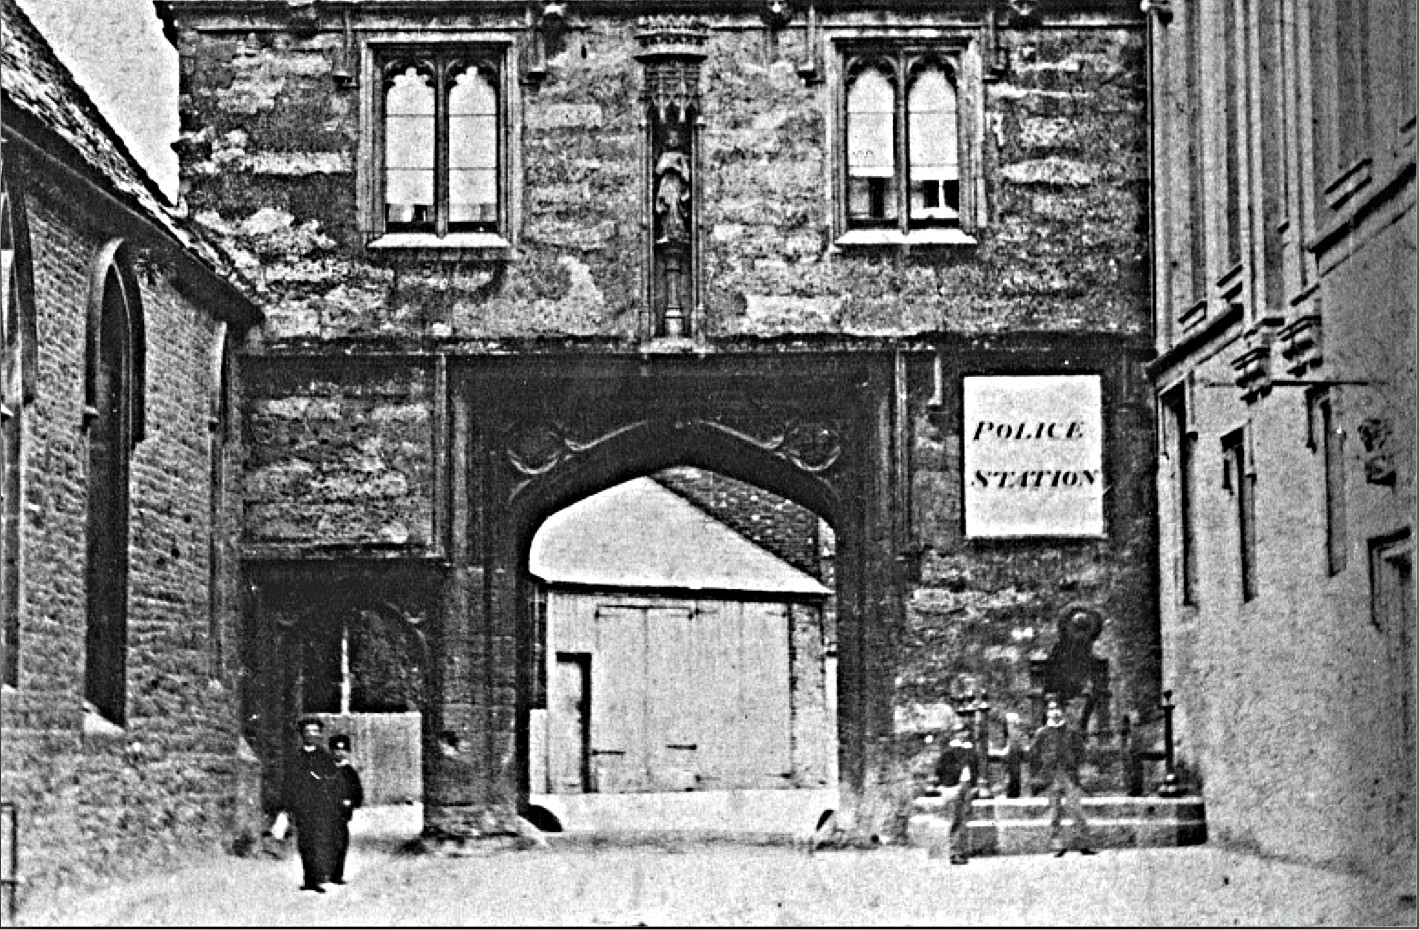 The Russian Cannon near the Abbey Gateway in about 1860. It stands under the notice saying POLICE STATION.  © Courtesy of Friends of Abingdon